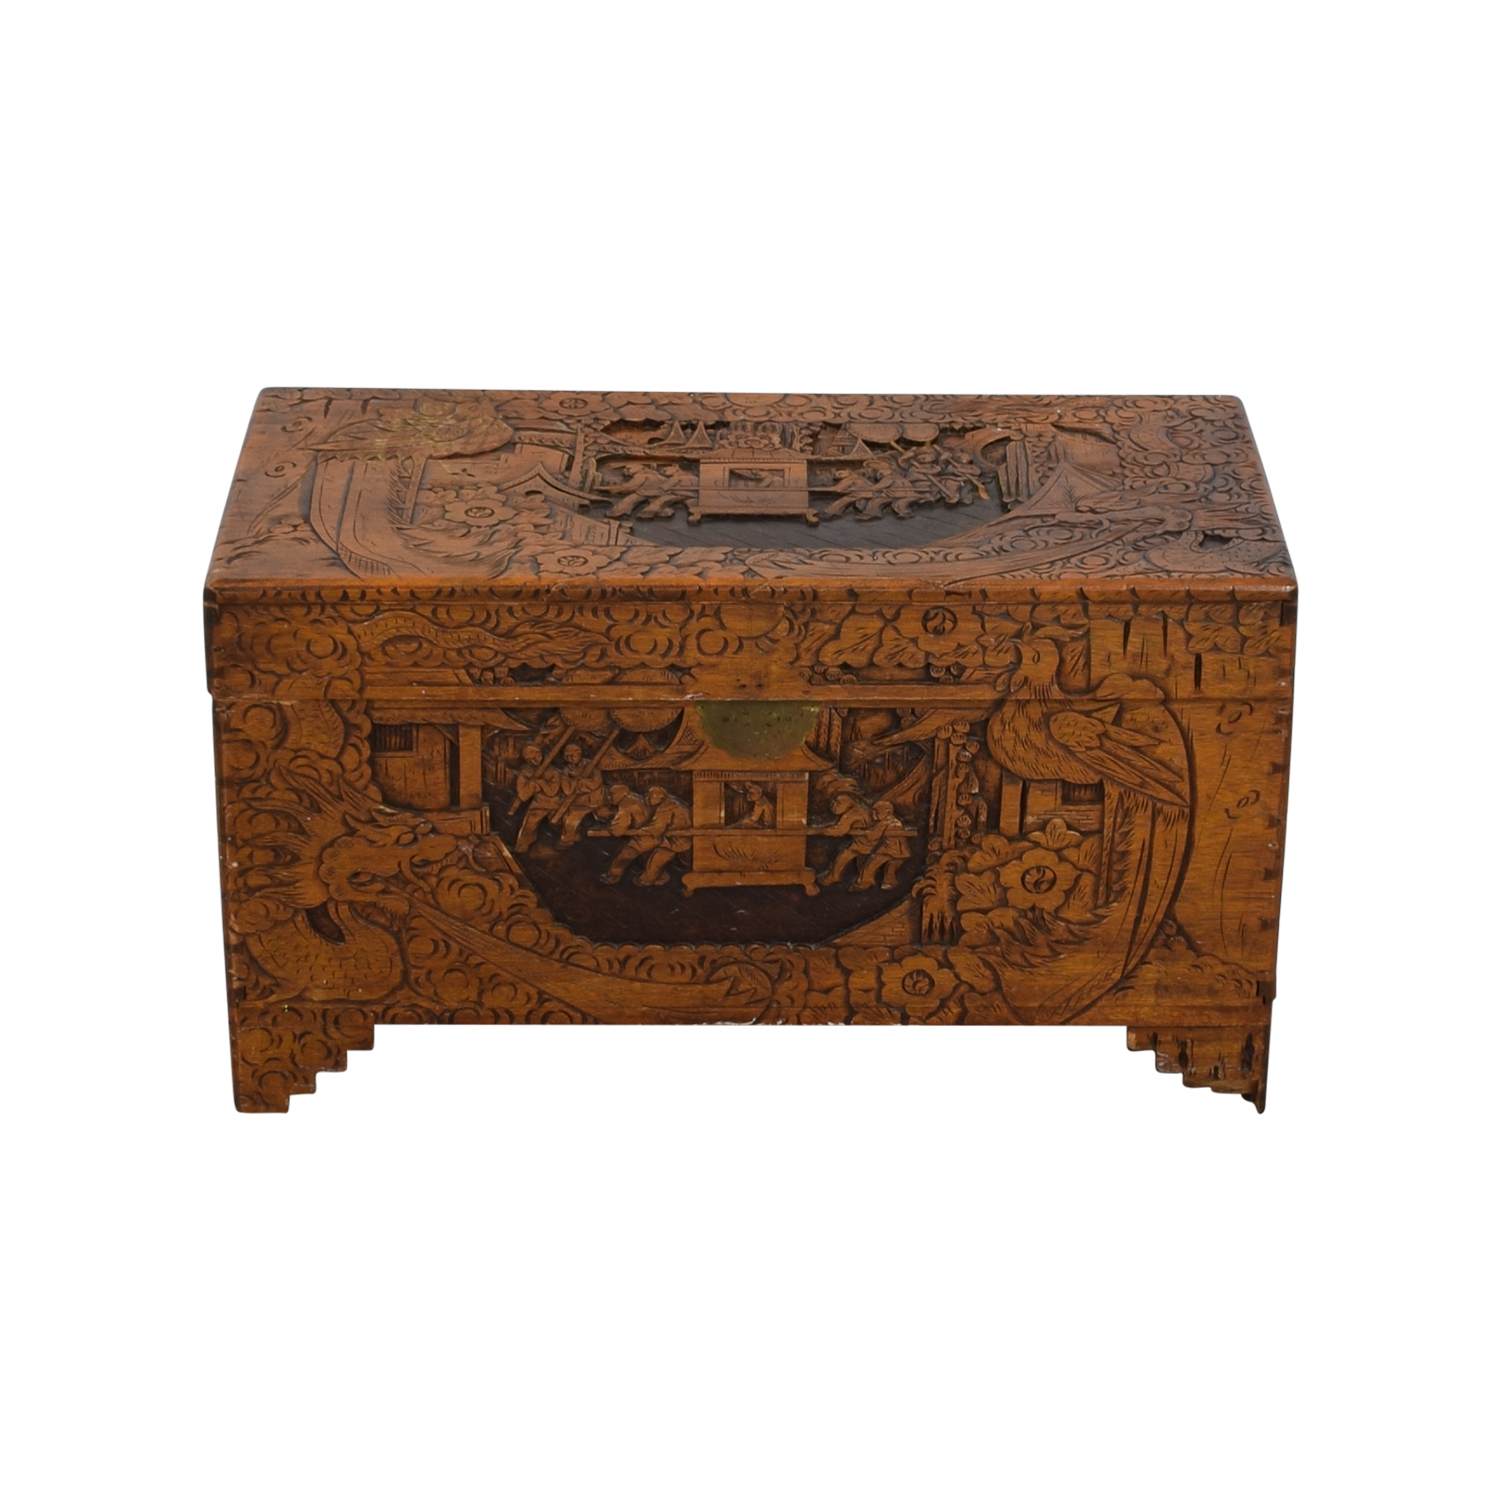 Chinese Wood Camphor Trunk used